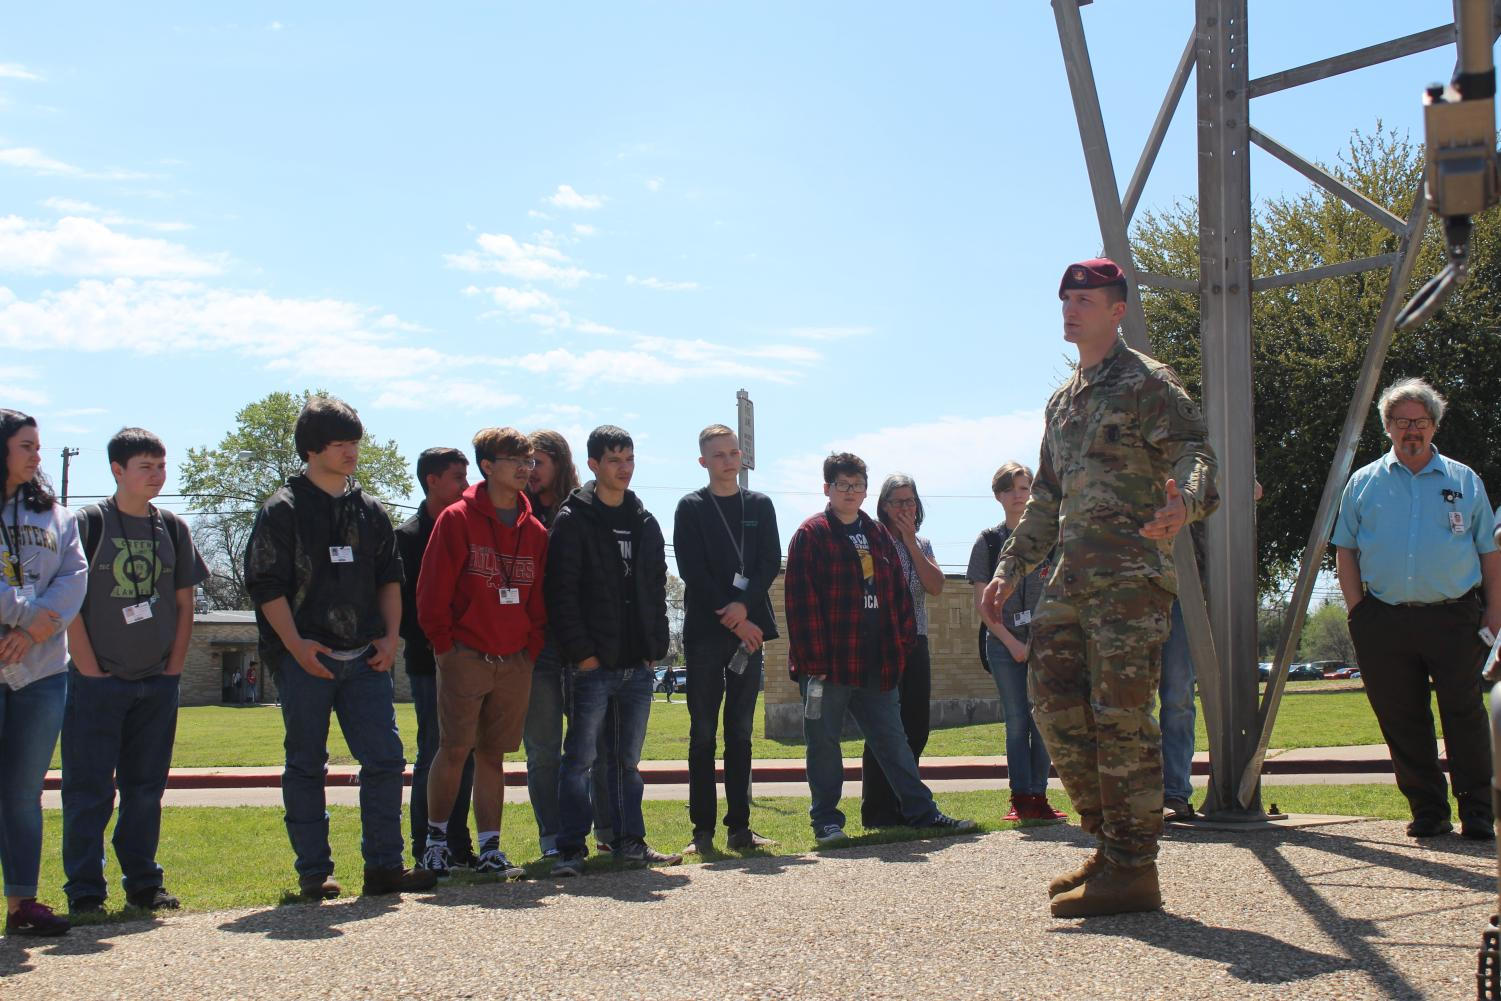 Staff Sergeant Hood discusses the duties of the Explosives Disposal Unit